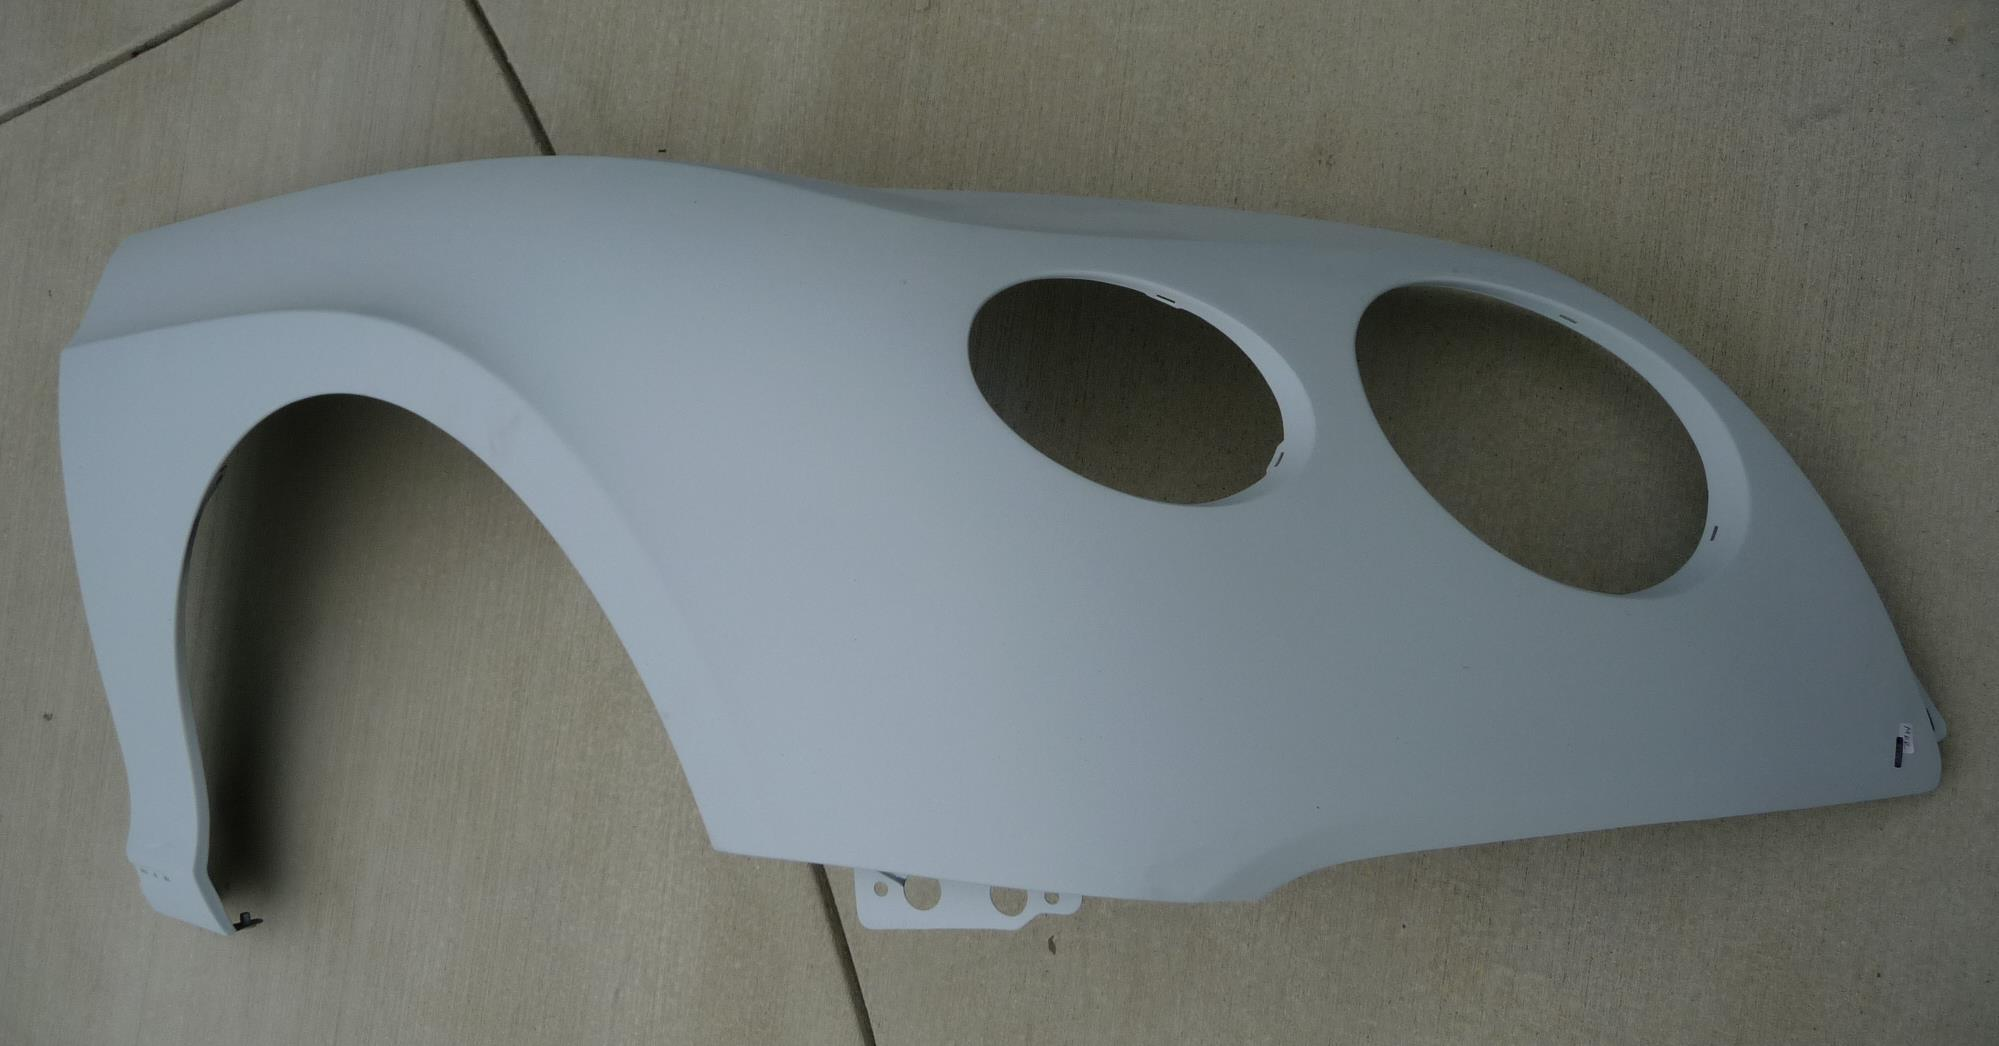 2012 2013 2014 2015 12 13 14 15 Bentley Continental GT GTC Right Passenger Fender Wing Cover 3W8821022A OEM OE